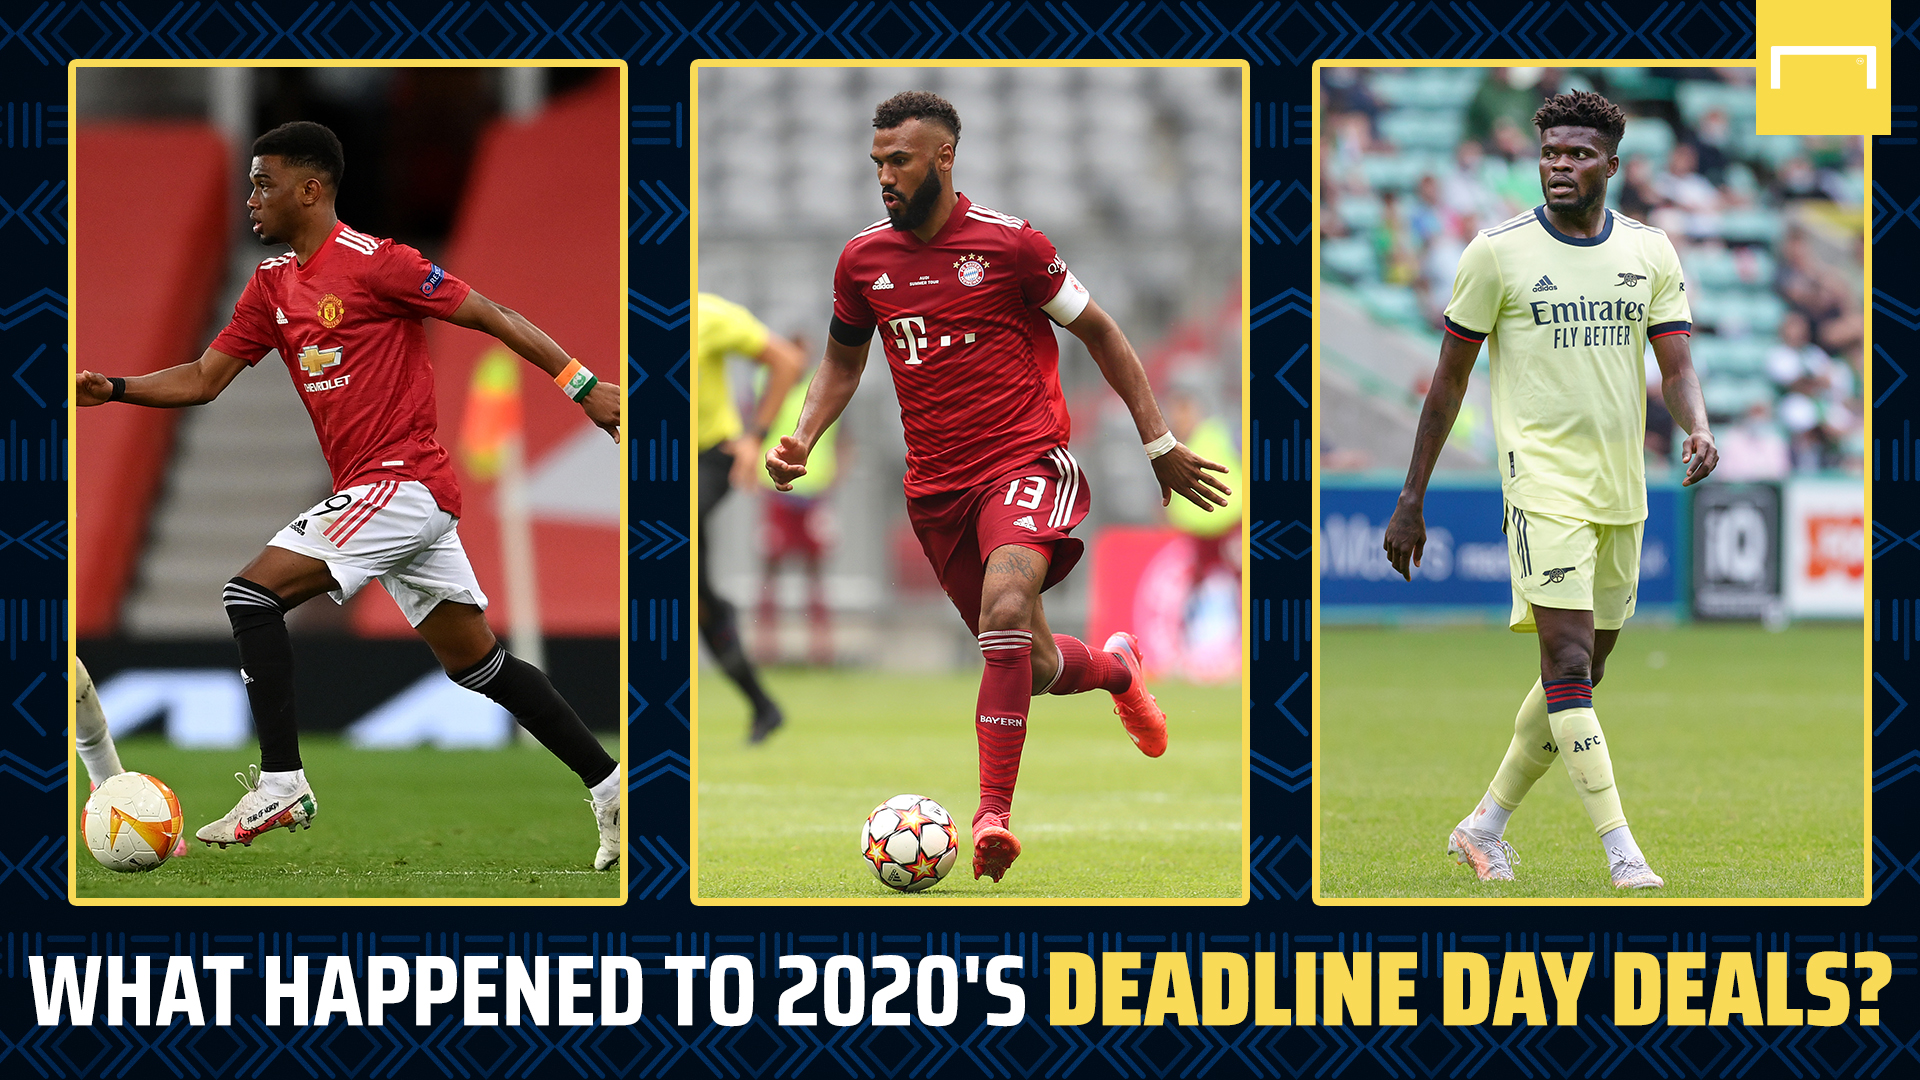 What happened to 2020's African transfer Deadline Day deals?